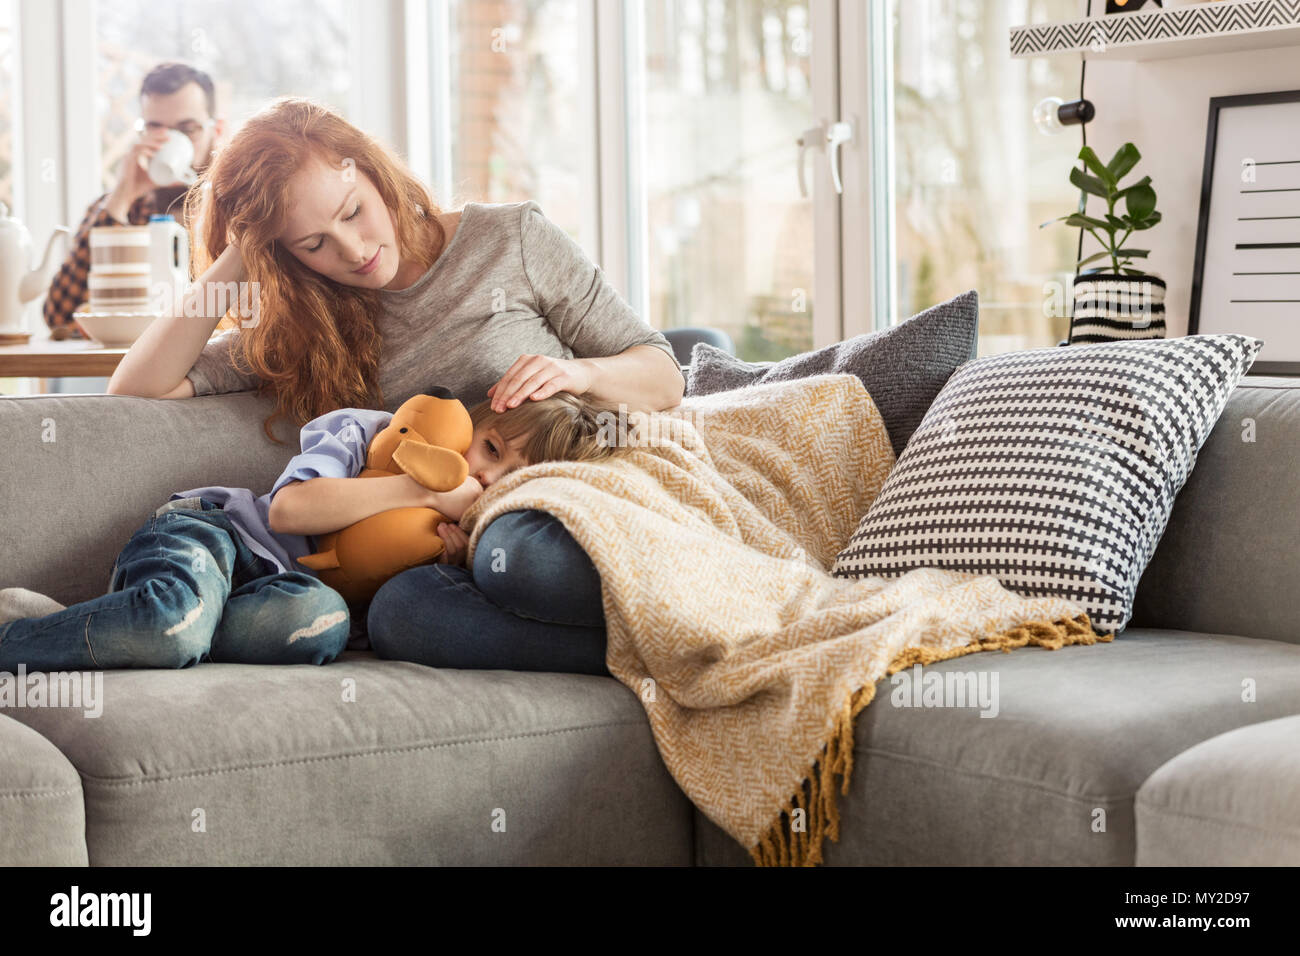 Mother taking care of her sleepy child while sitting on a couch in the living room Stock Photo